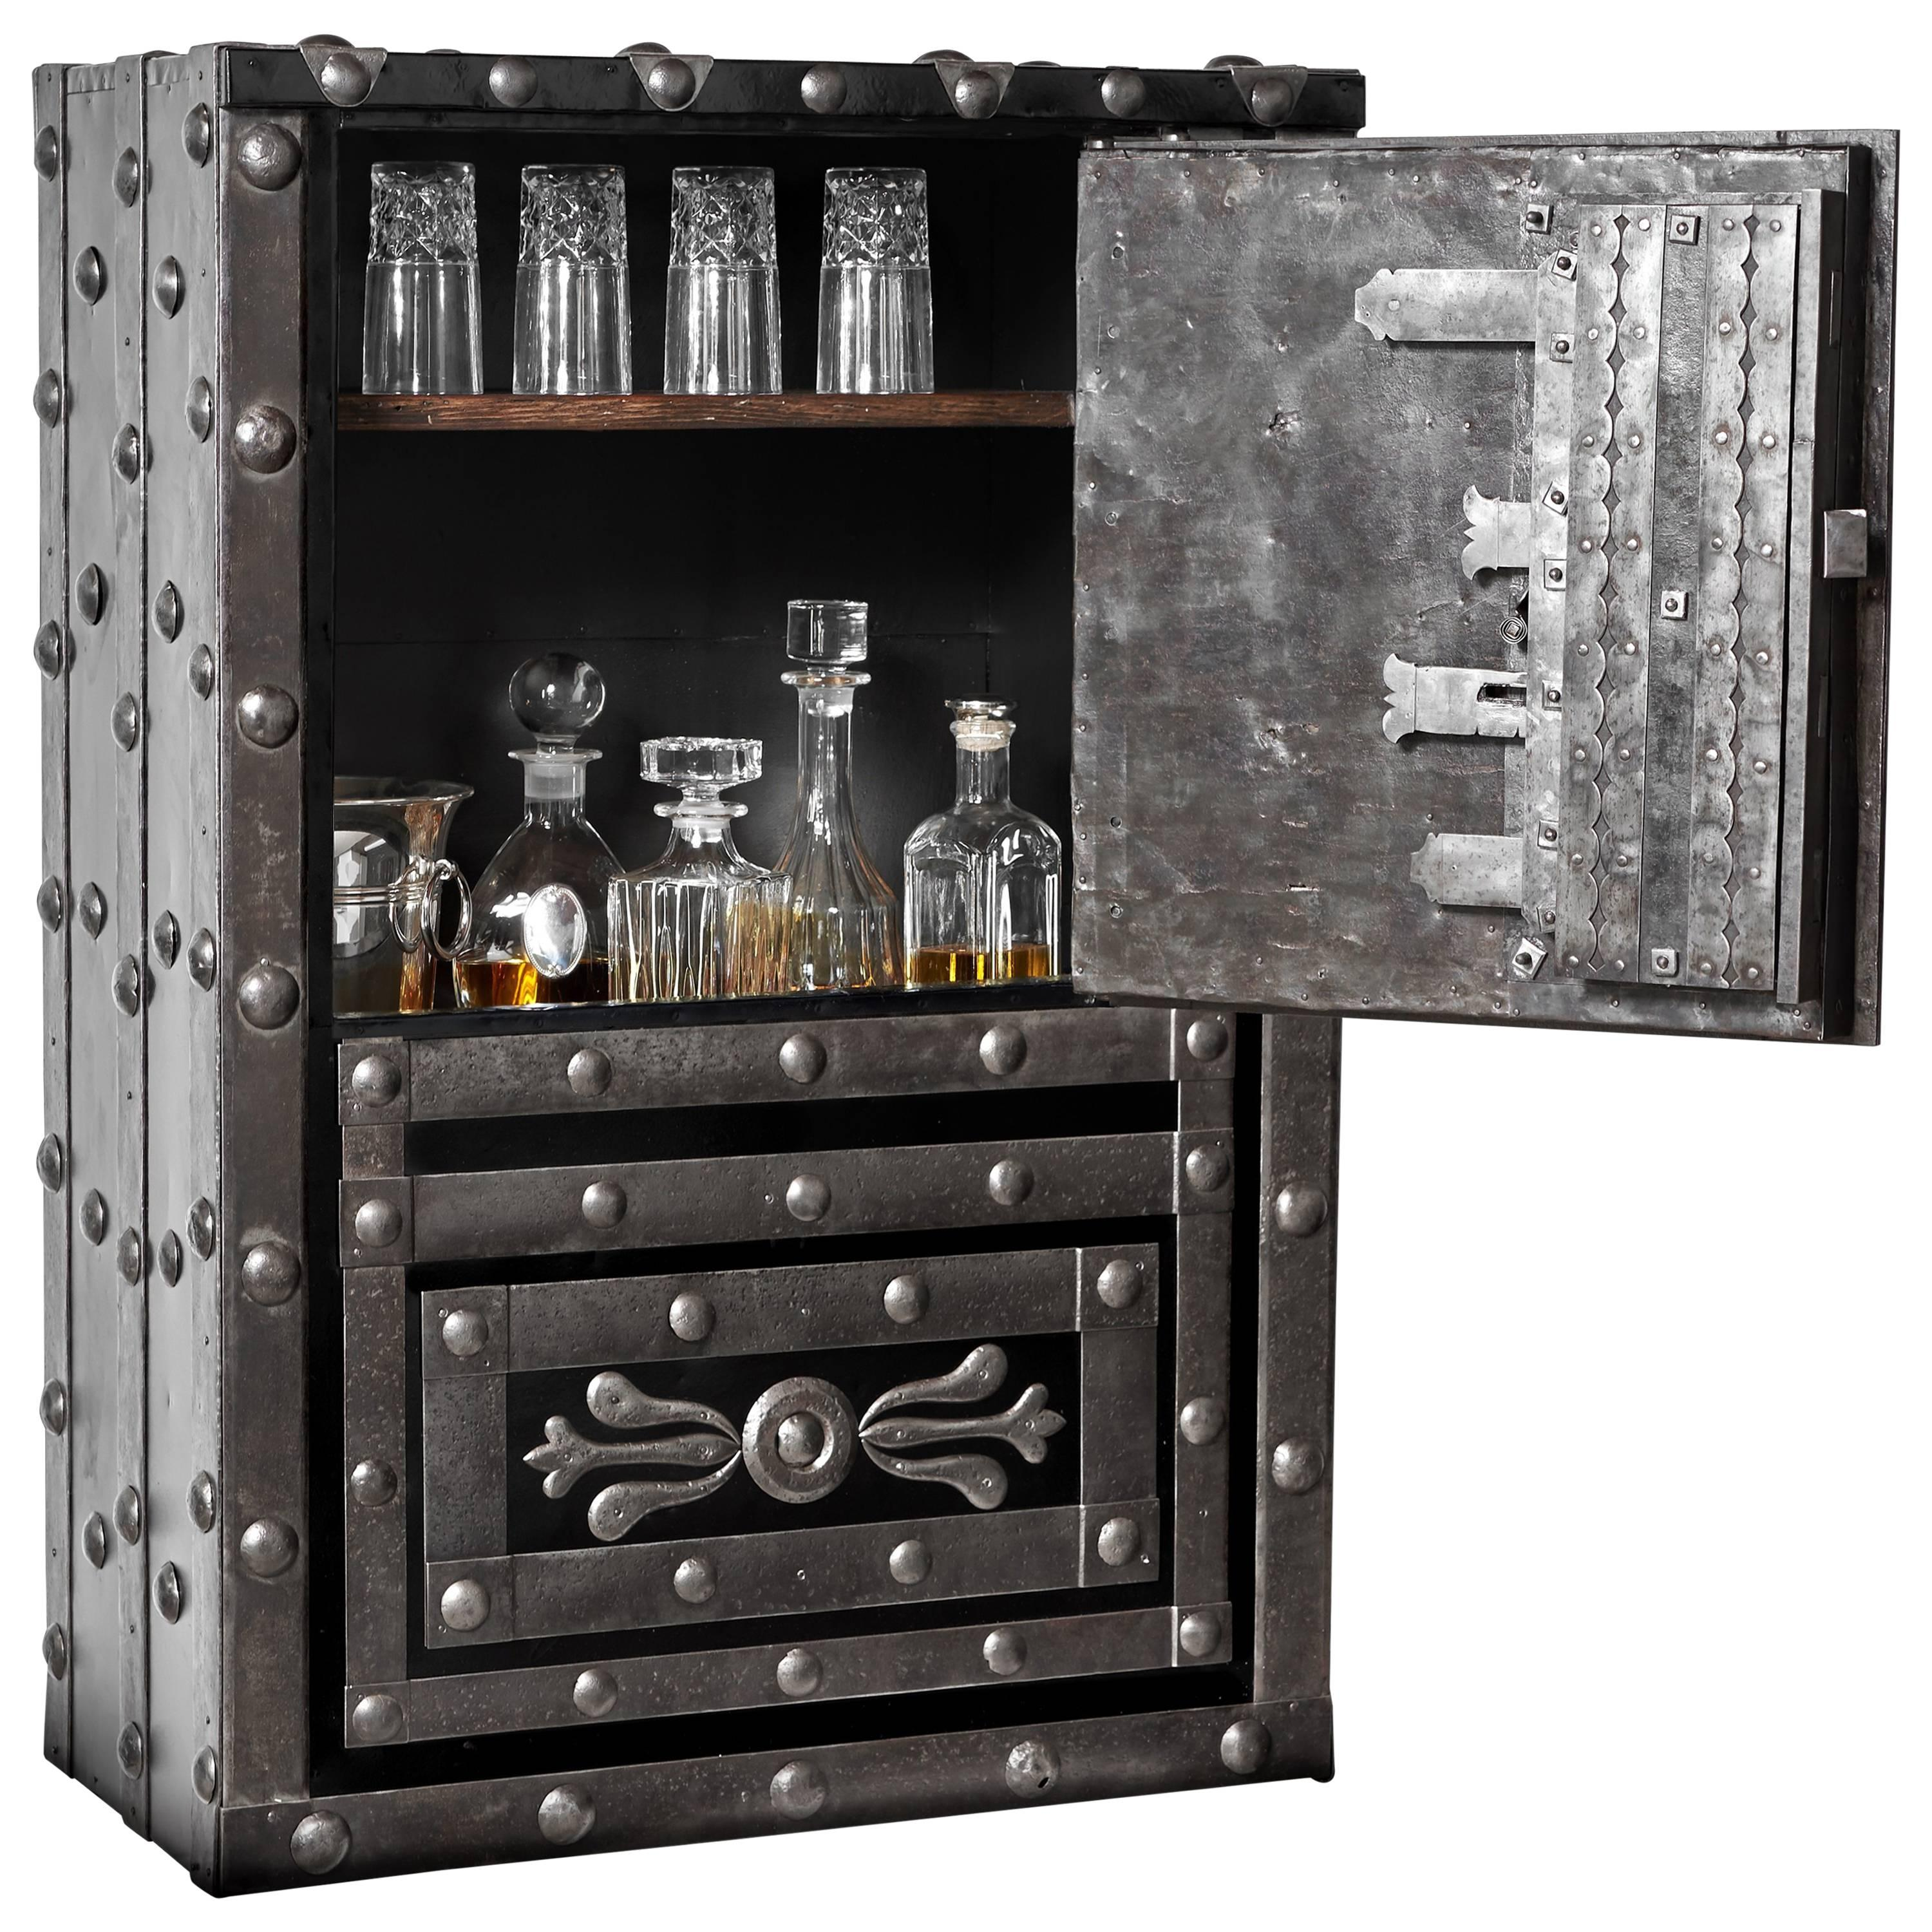 19th Century Italian Antique Hobnail Safe Ideal As Liquor Cabinet Or Dry  Bar For Sale